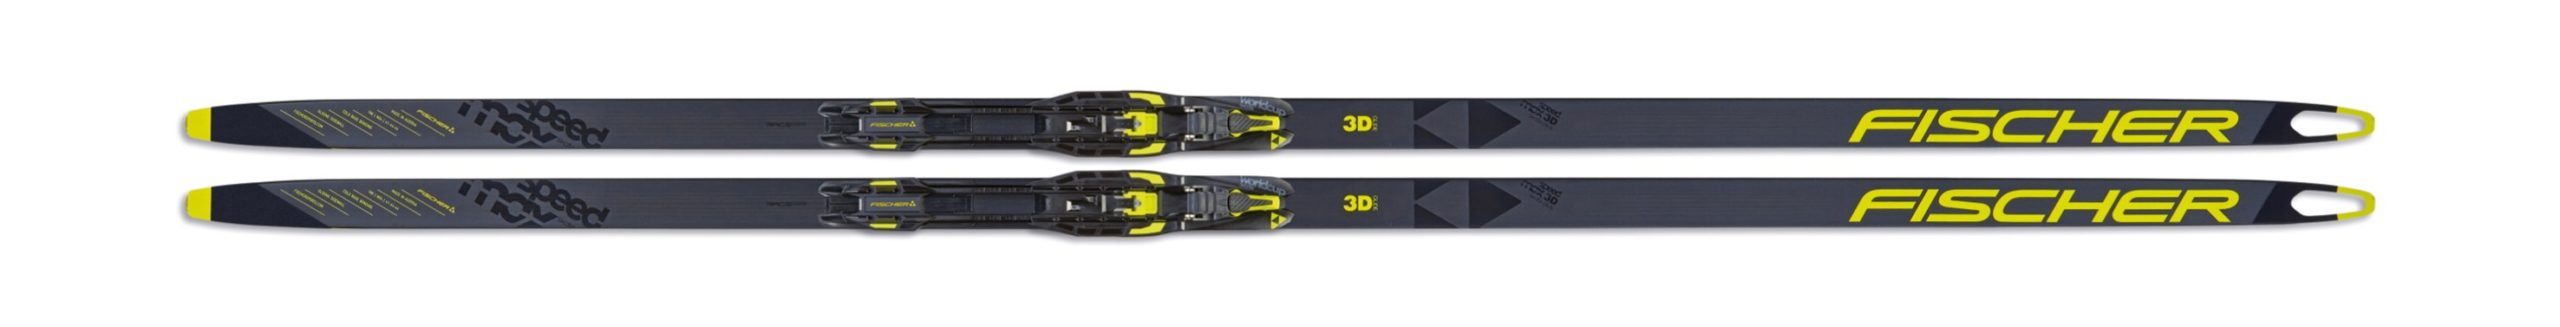 Fischer's Speedmax 3D Skis with World Cup IFP binding